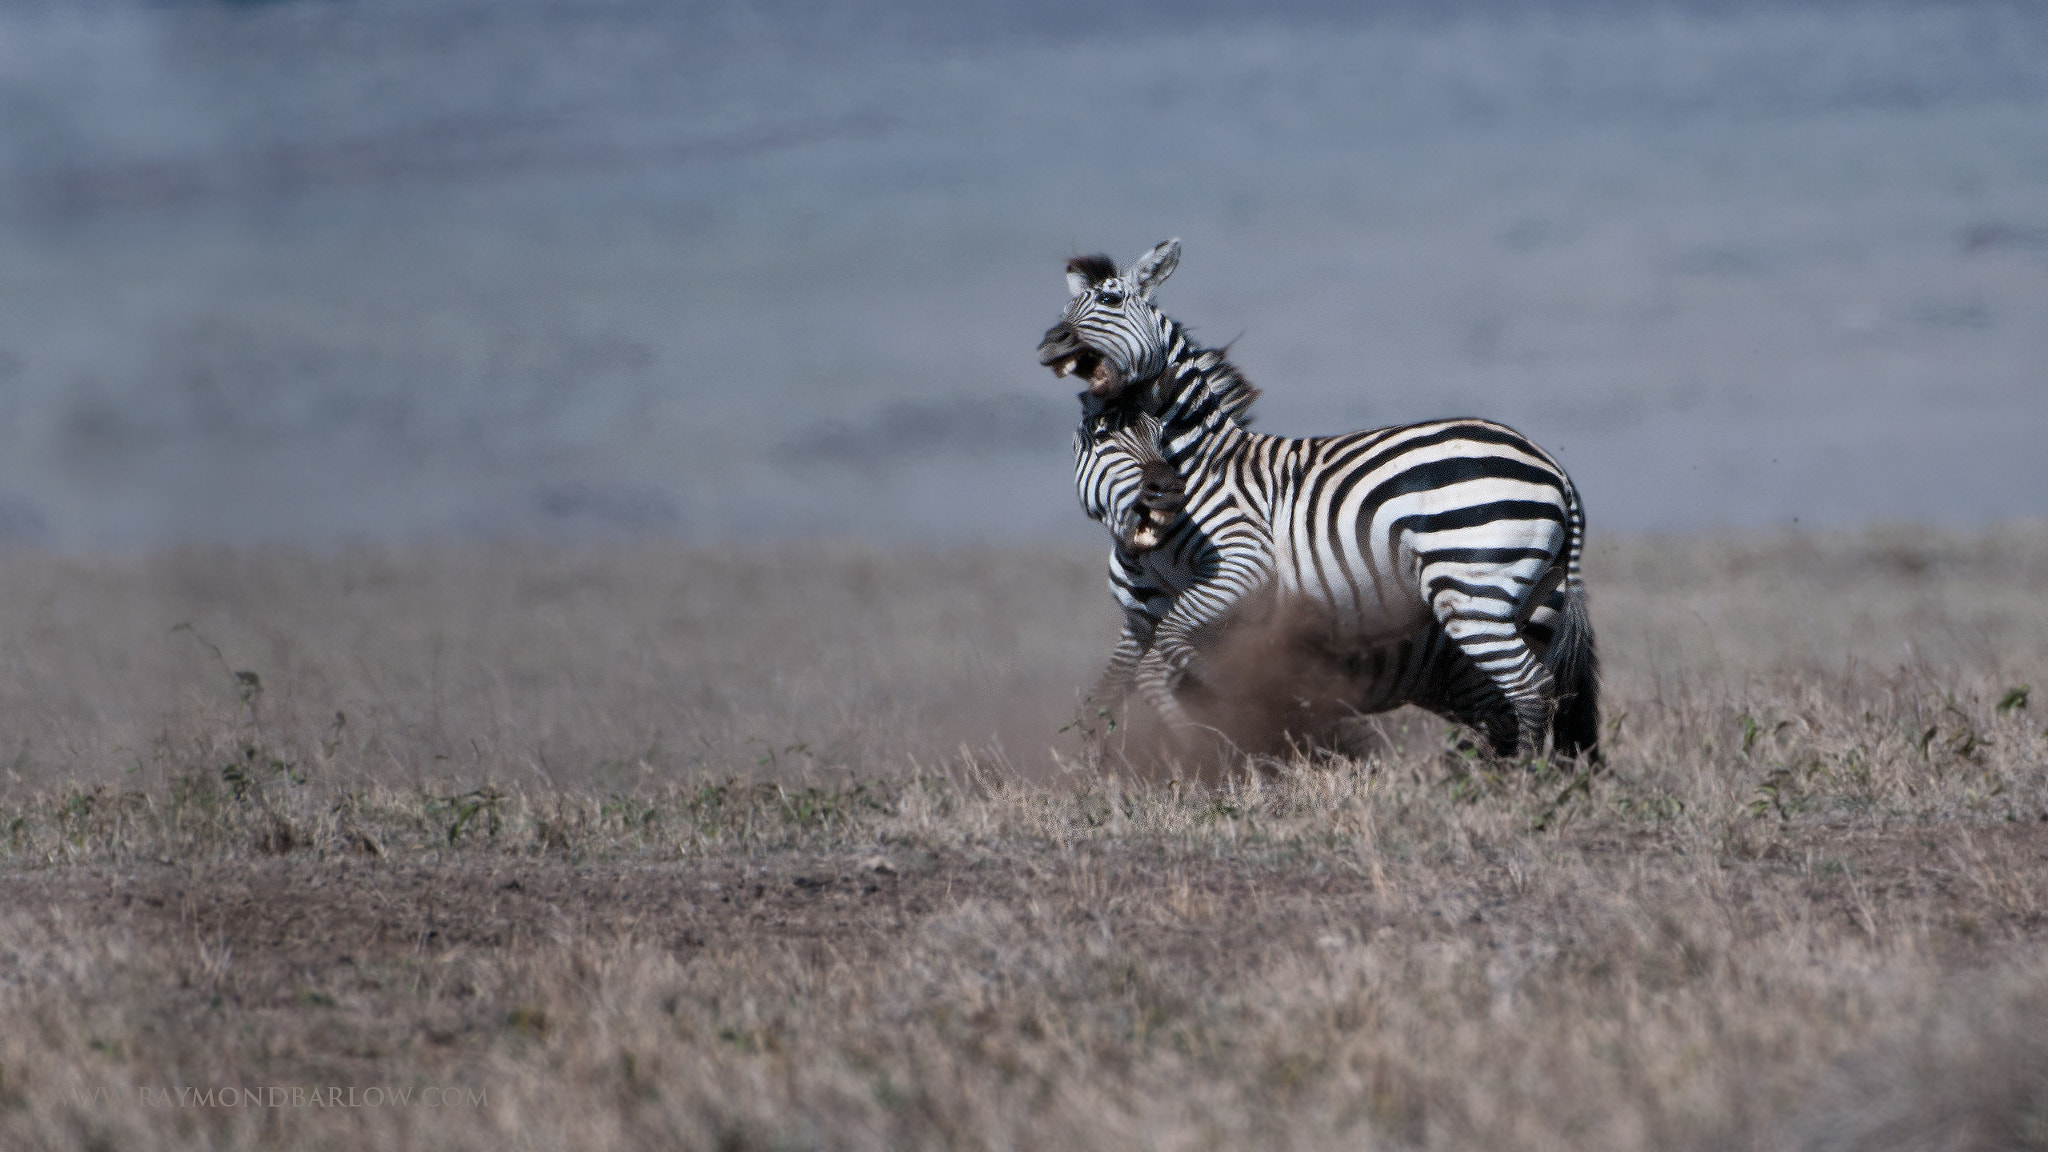 Photograph Zebra in Battle by Raymond Barlow on 500px